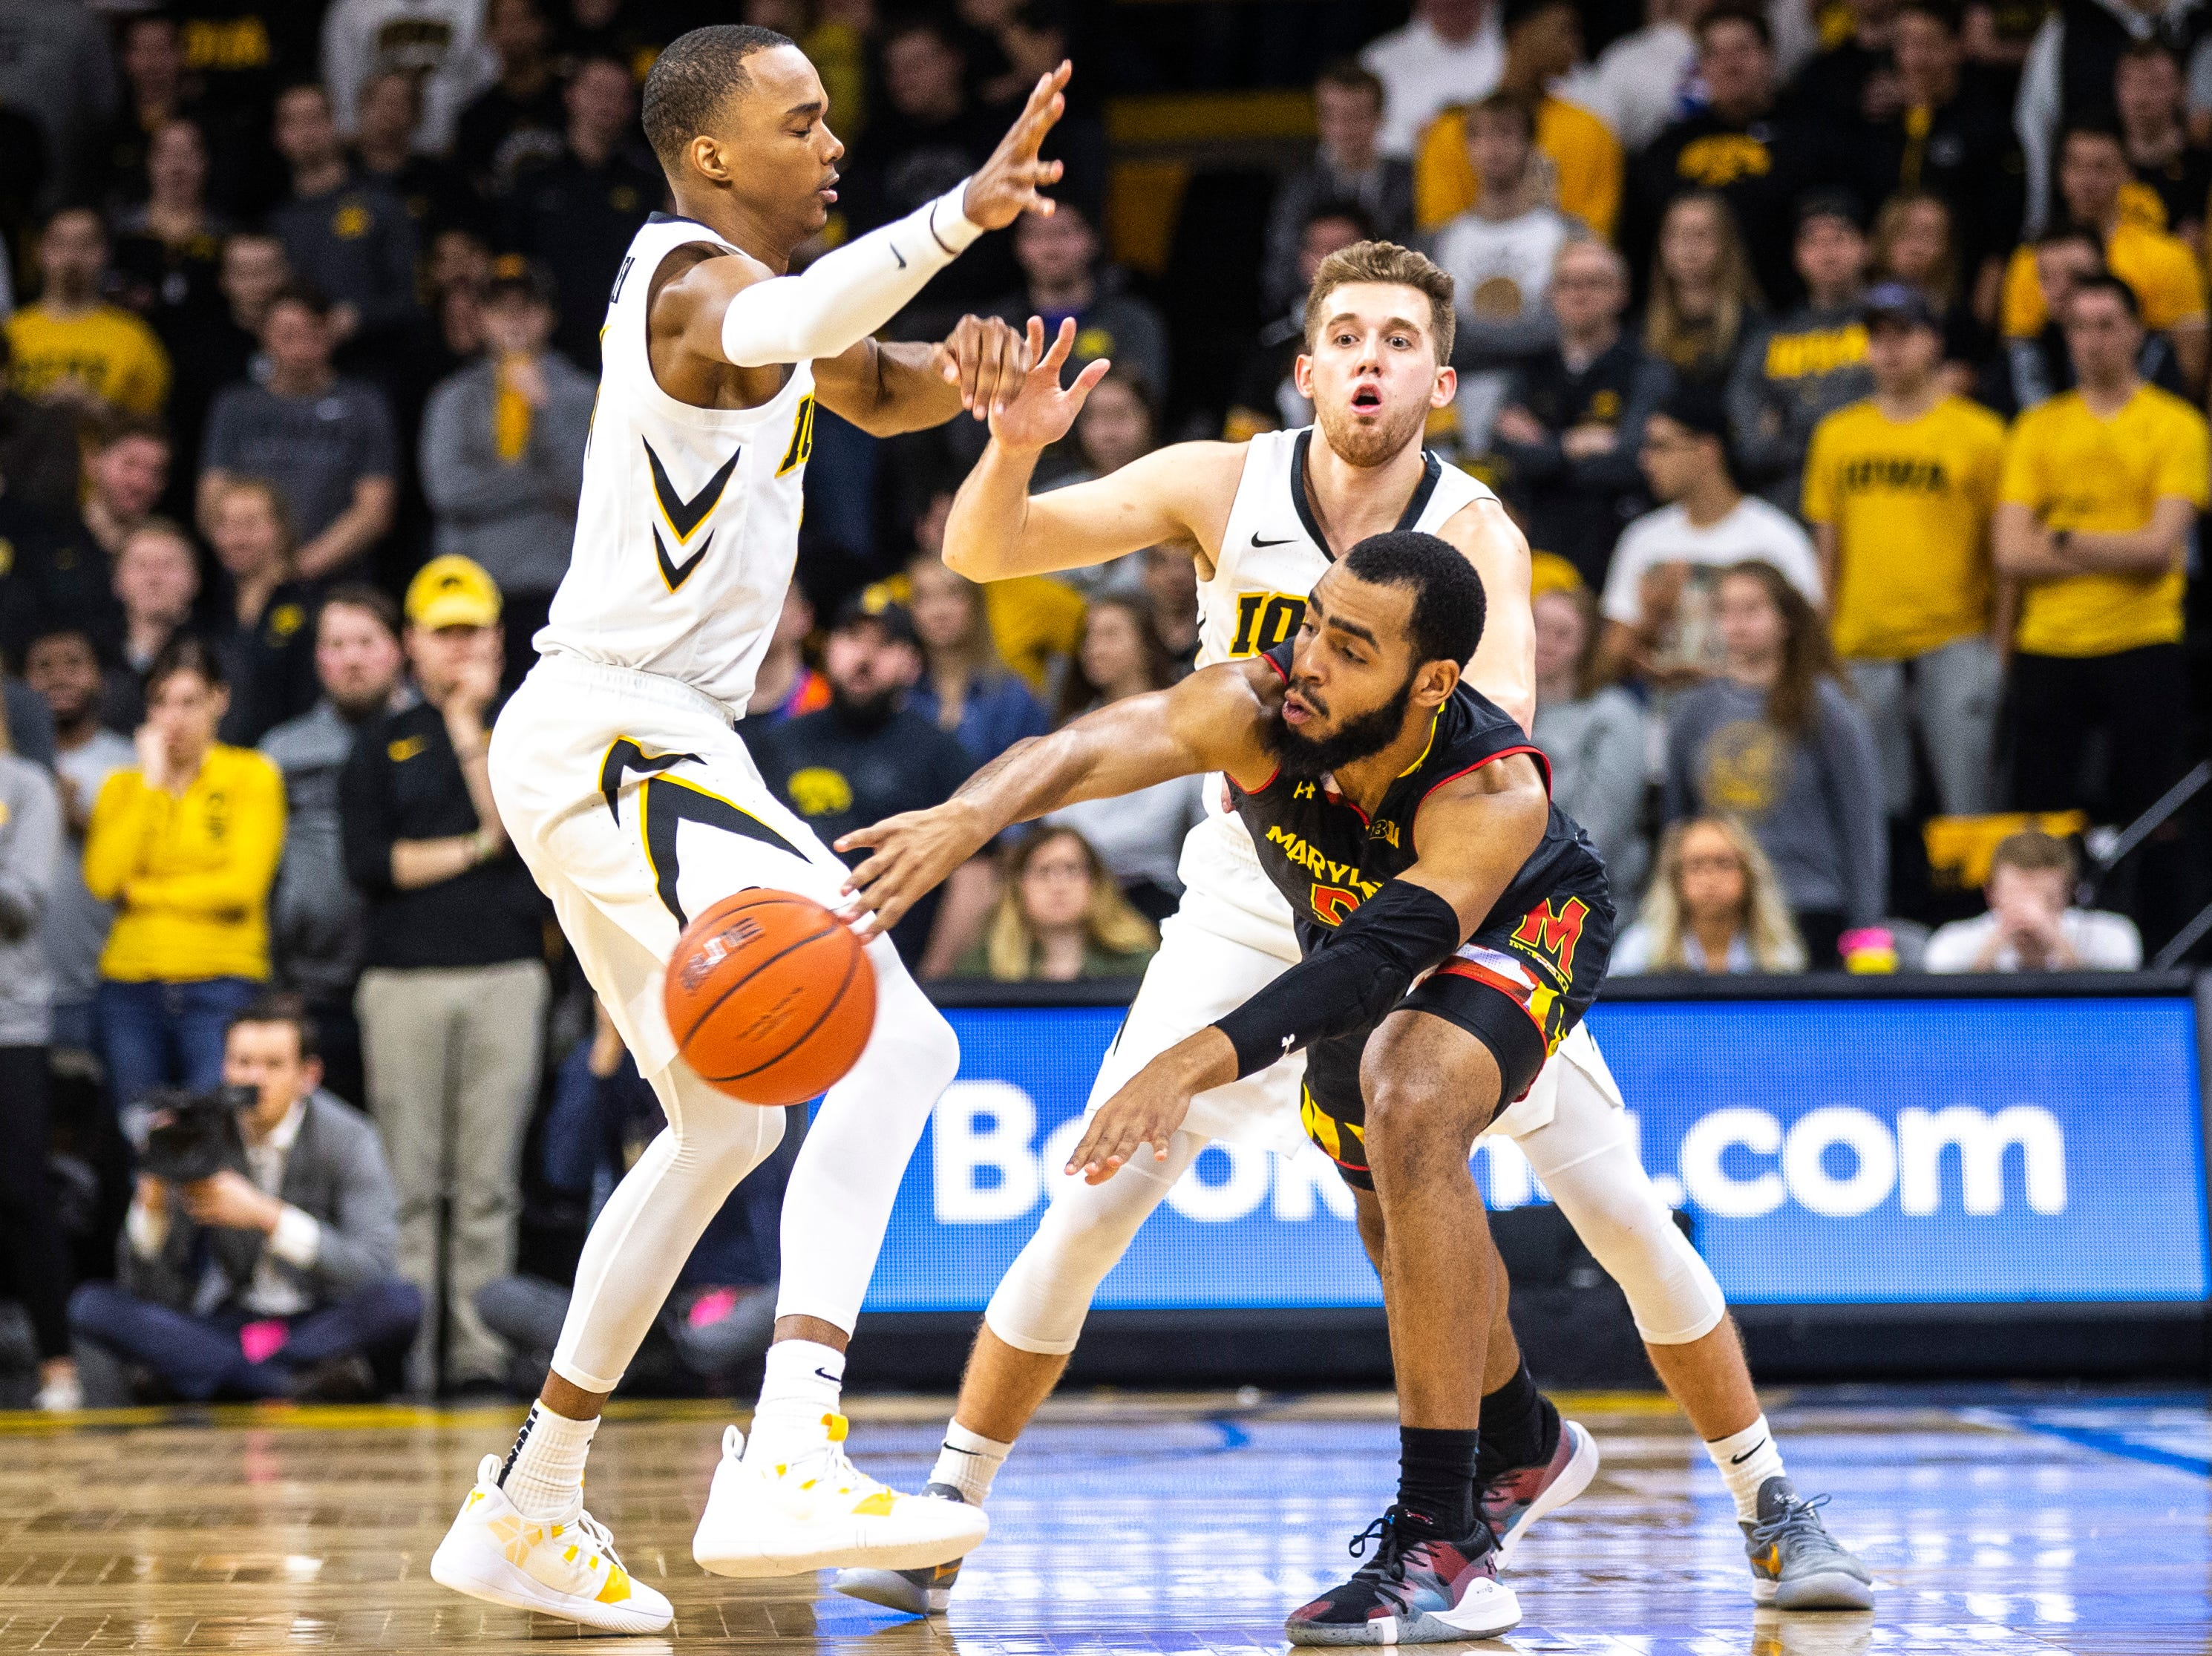 Iowa guard Jordan Bohannon (back) and Iowa guard Maishe Dailey (left) defend Maryland guard Eric Ayala (5) during a NCAA Big Ten Conference men's basketball game on Tuesday, Feb. 19, 2019 at Carver-Hawkeye Arena in Iowa City, Iowa.